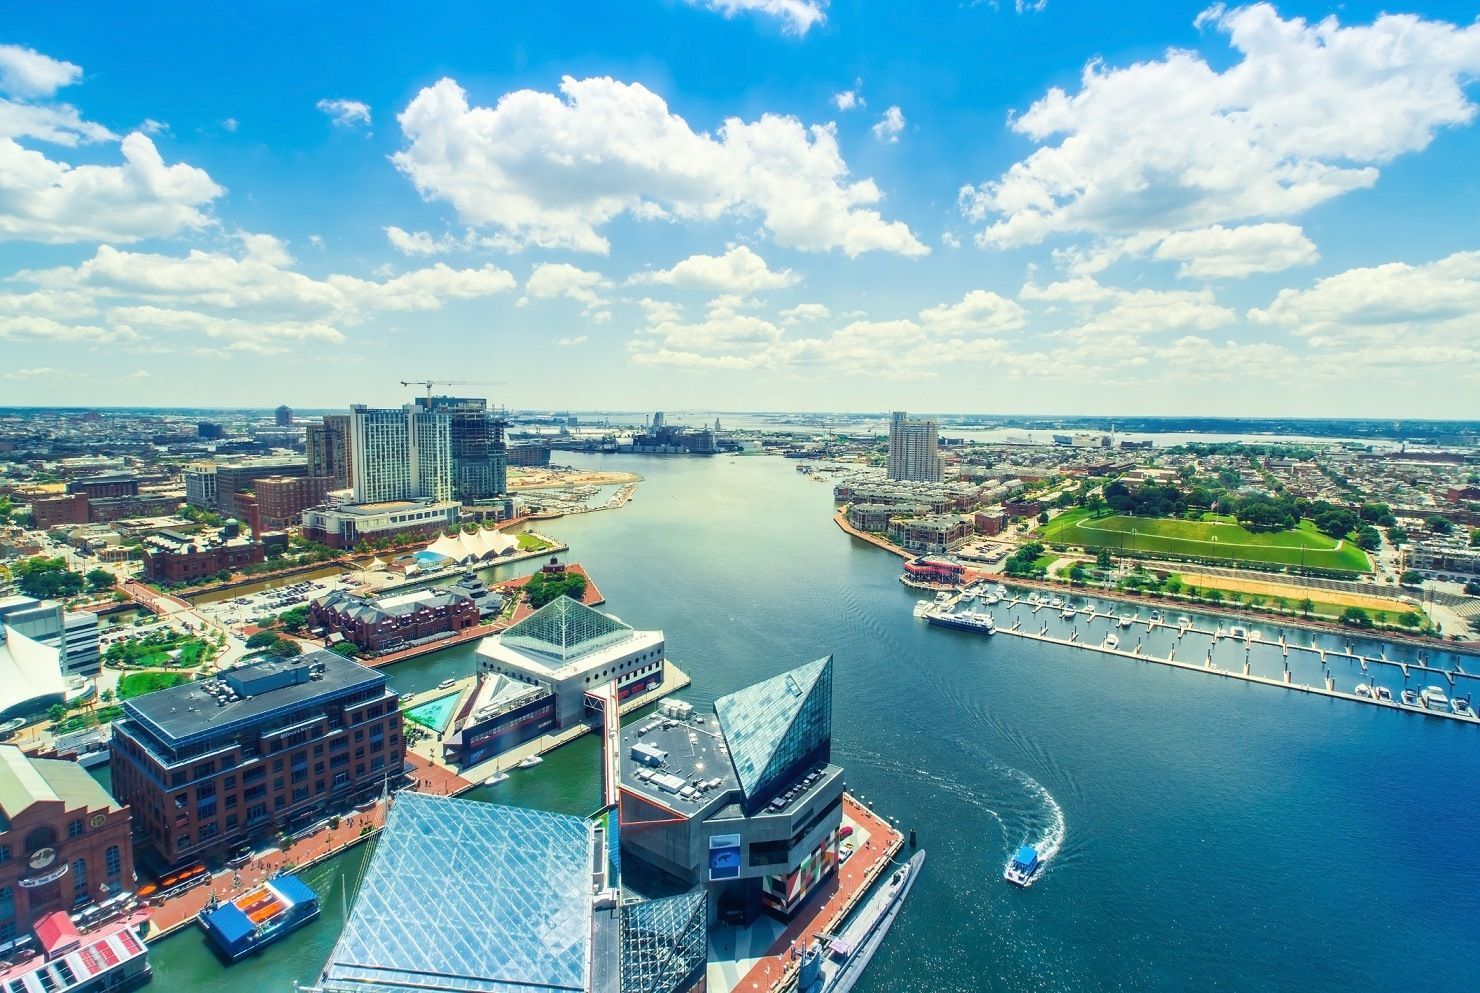 Inner Harbor of Baltimore, Maryland